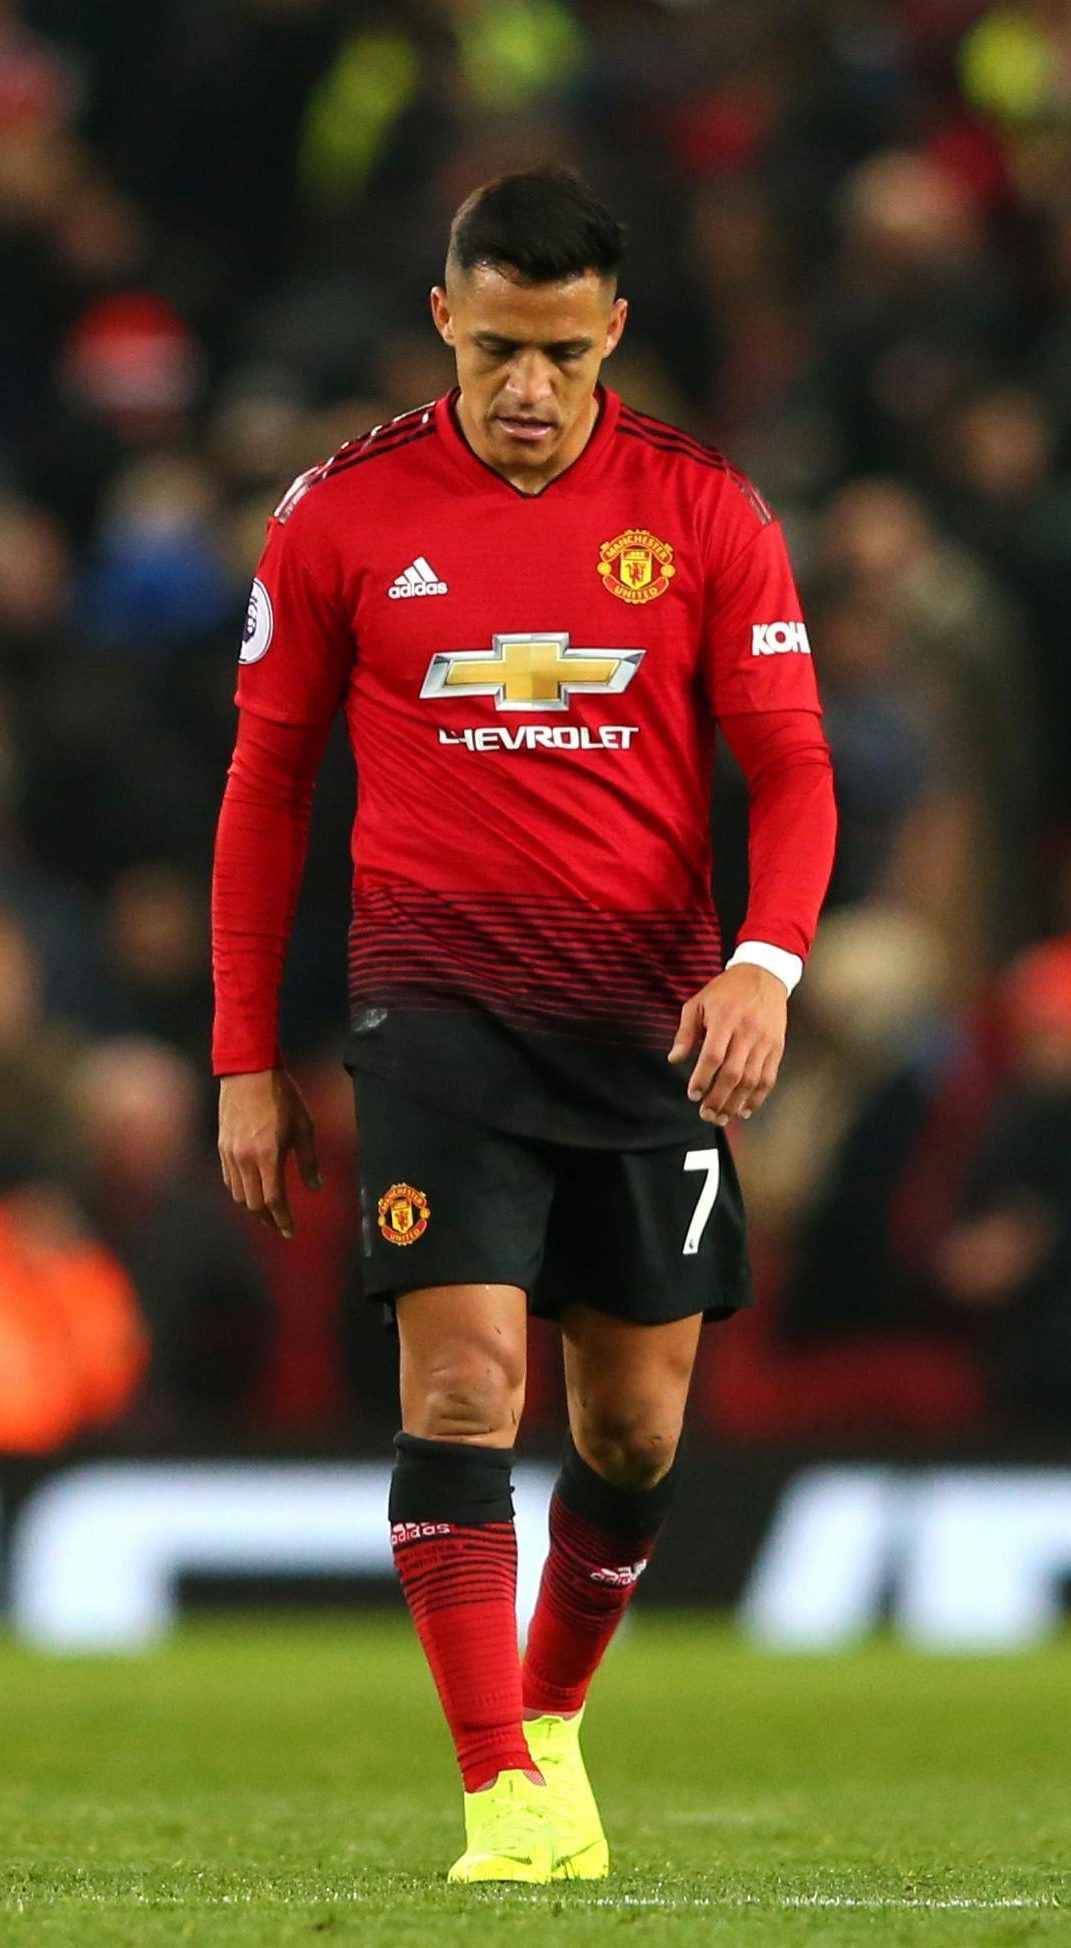 Mourinho said Sanchez was simply dropped for the match